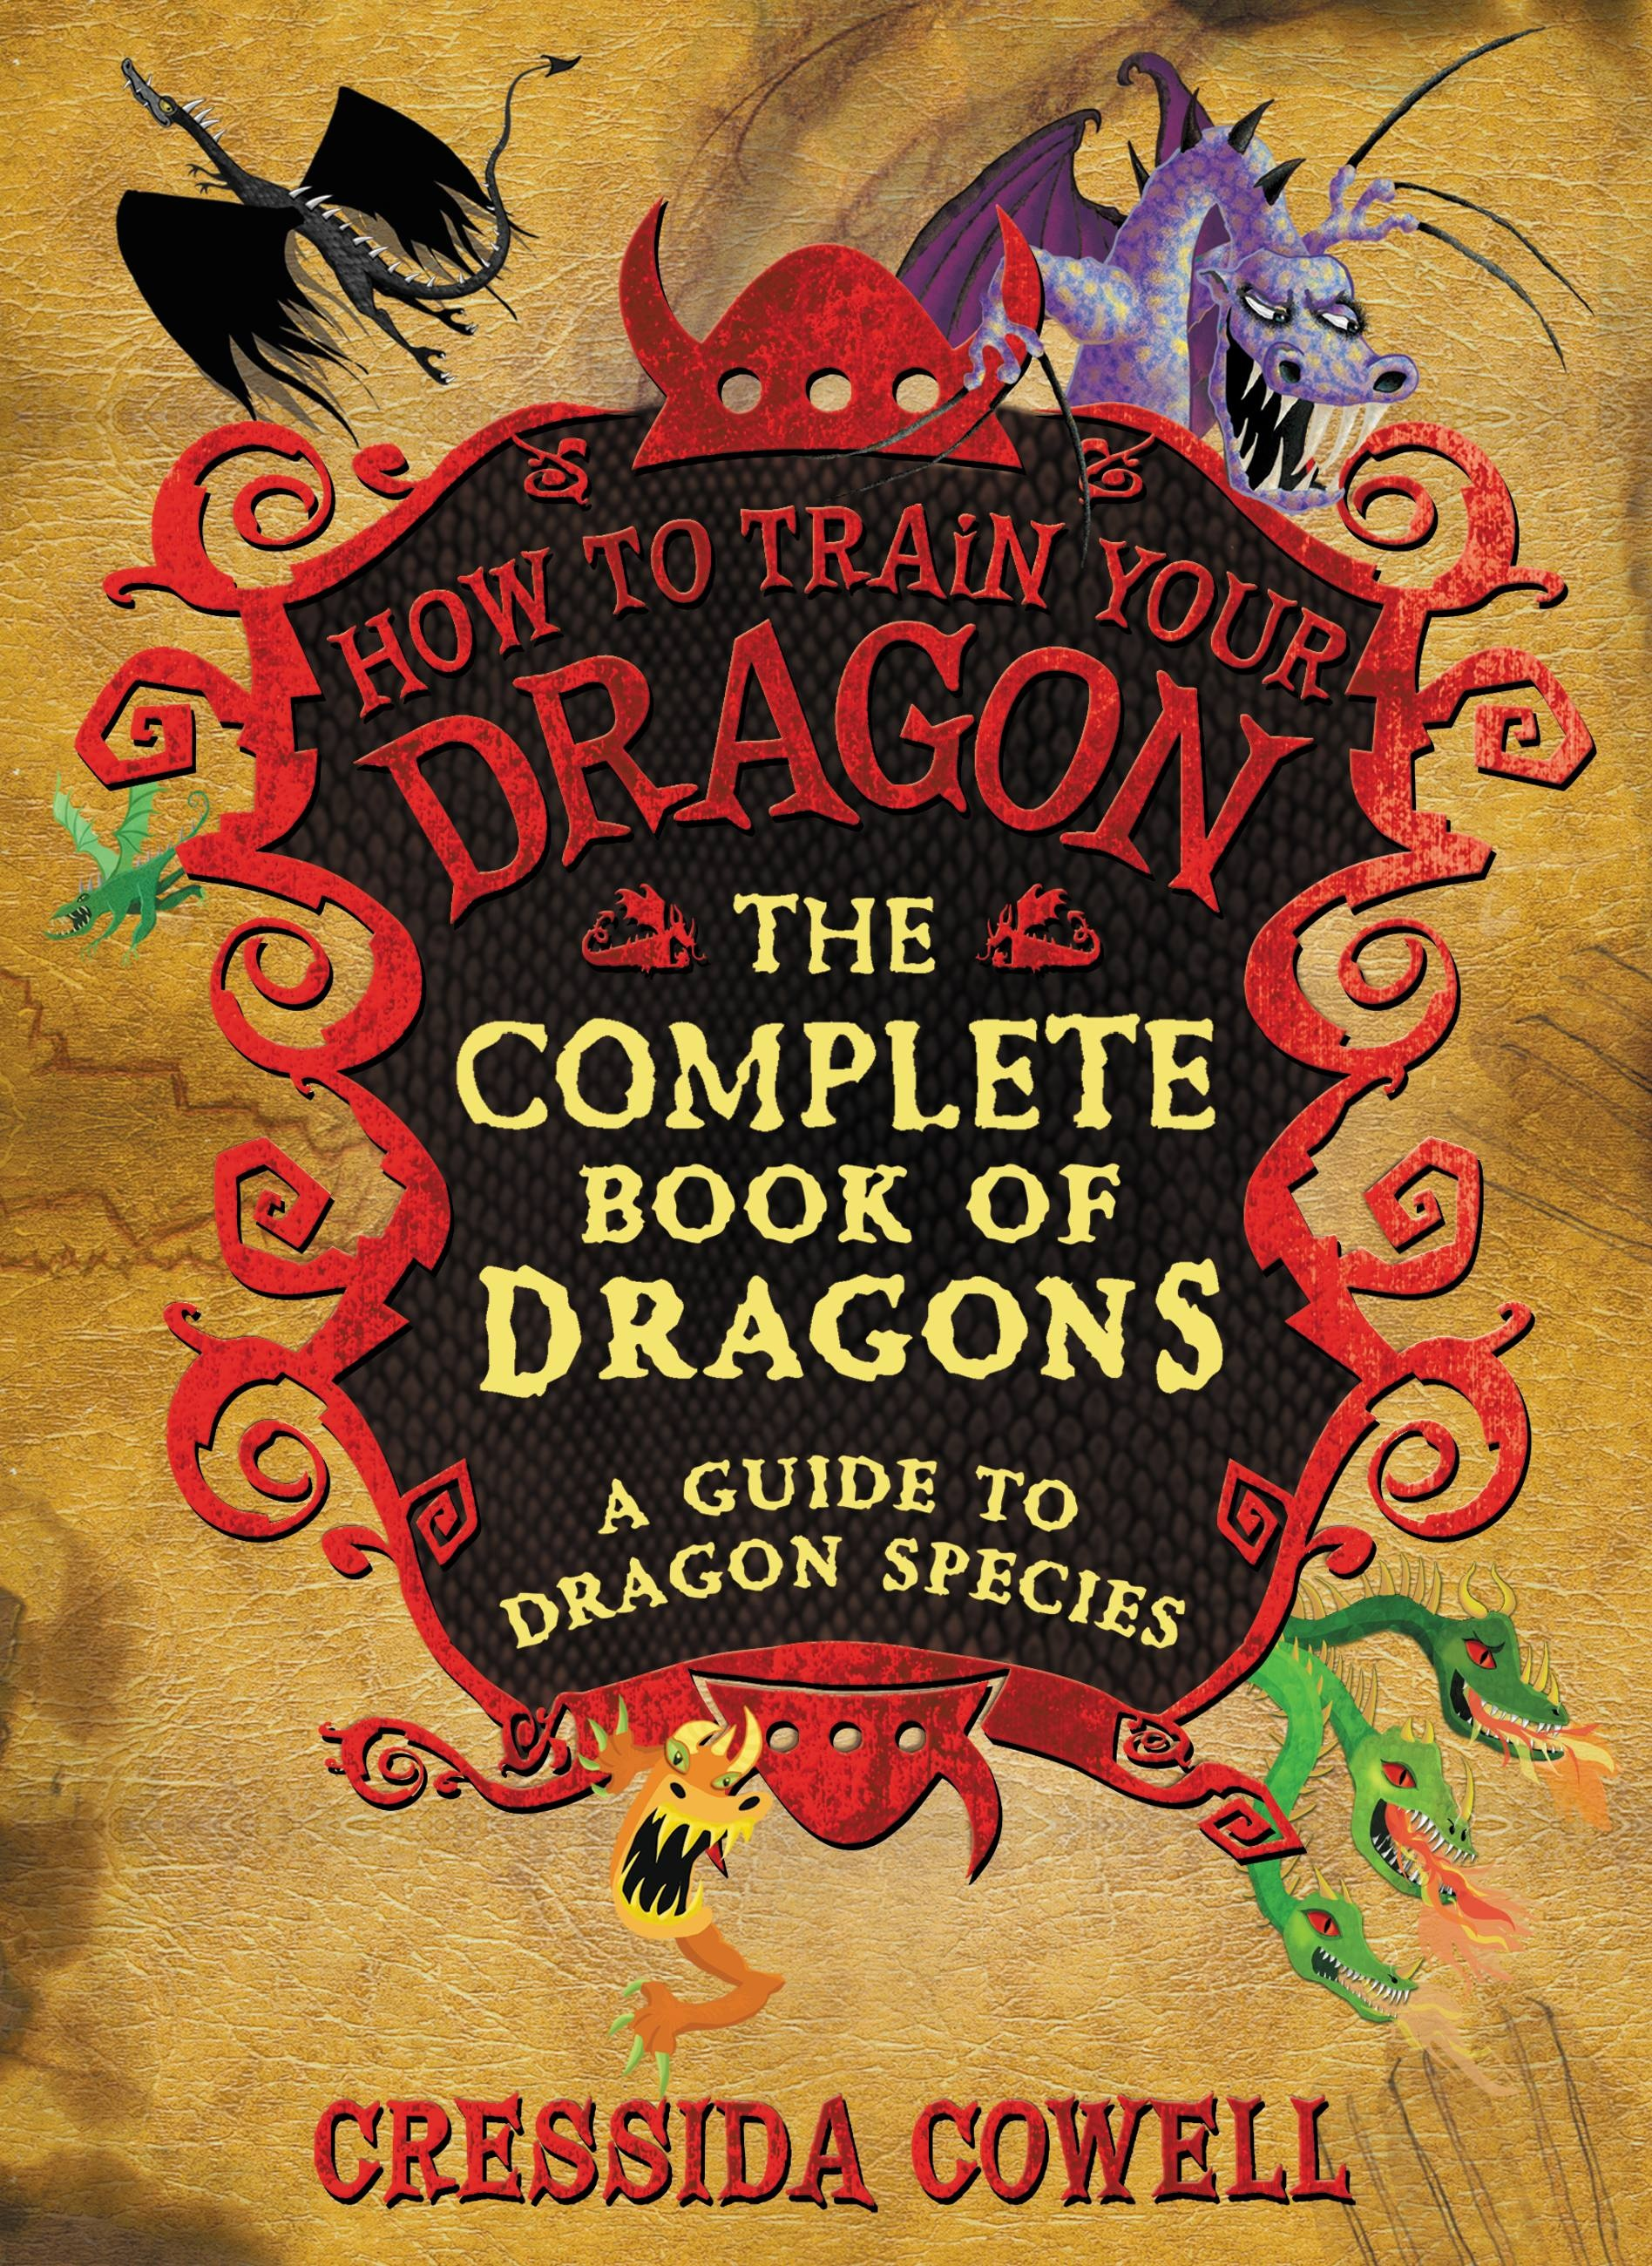 The complete book of dragons by cressida cowell little brown the complete book of dragons by cressida cowell little brown books for young readers ccuart Images